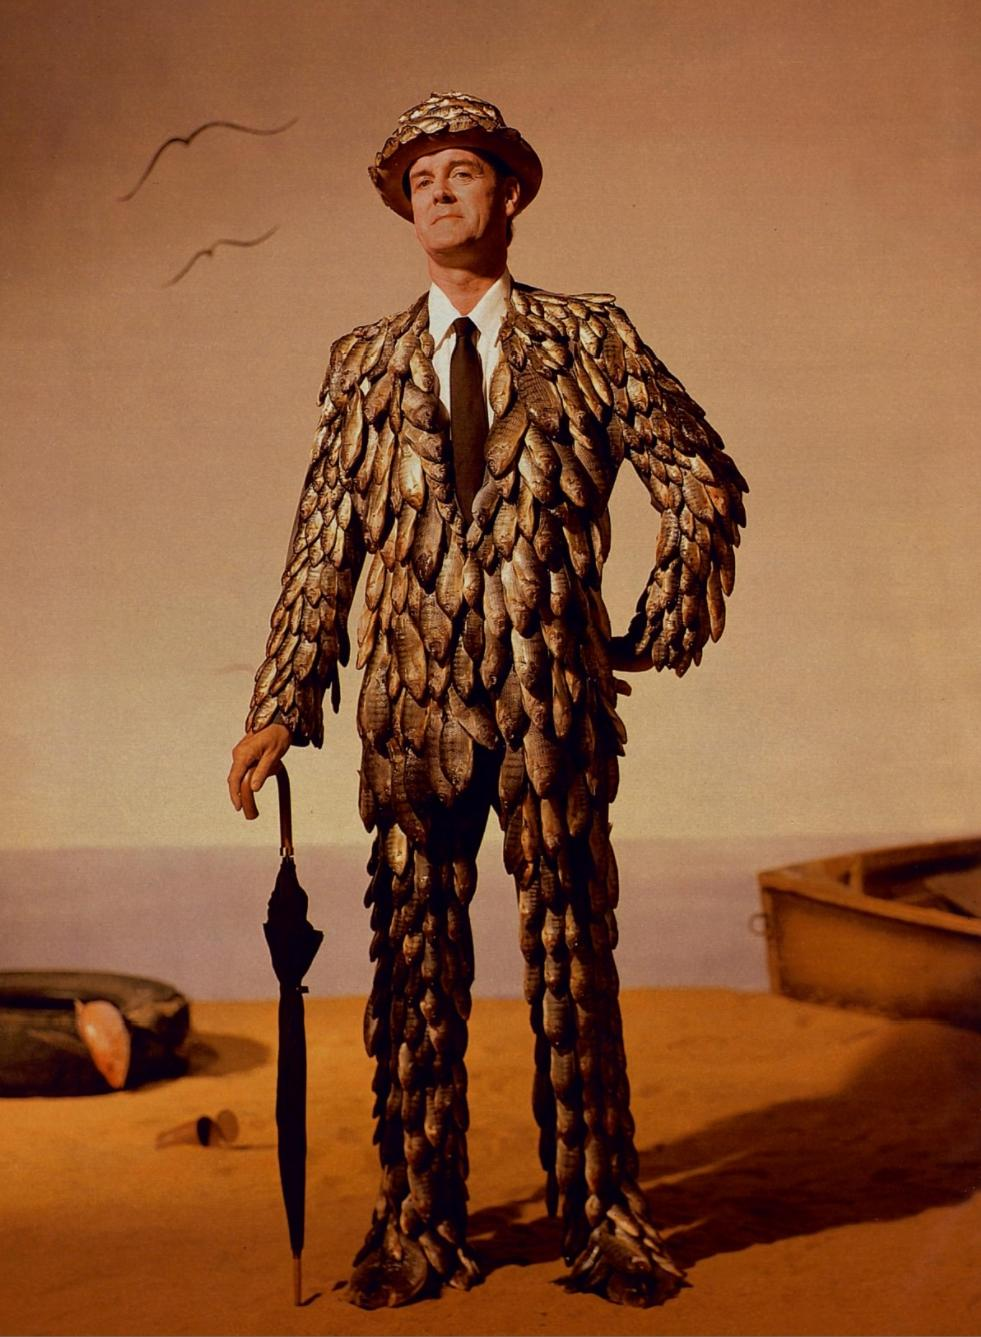 john-cleese-in-a-fishsuit.-that-is-all.